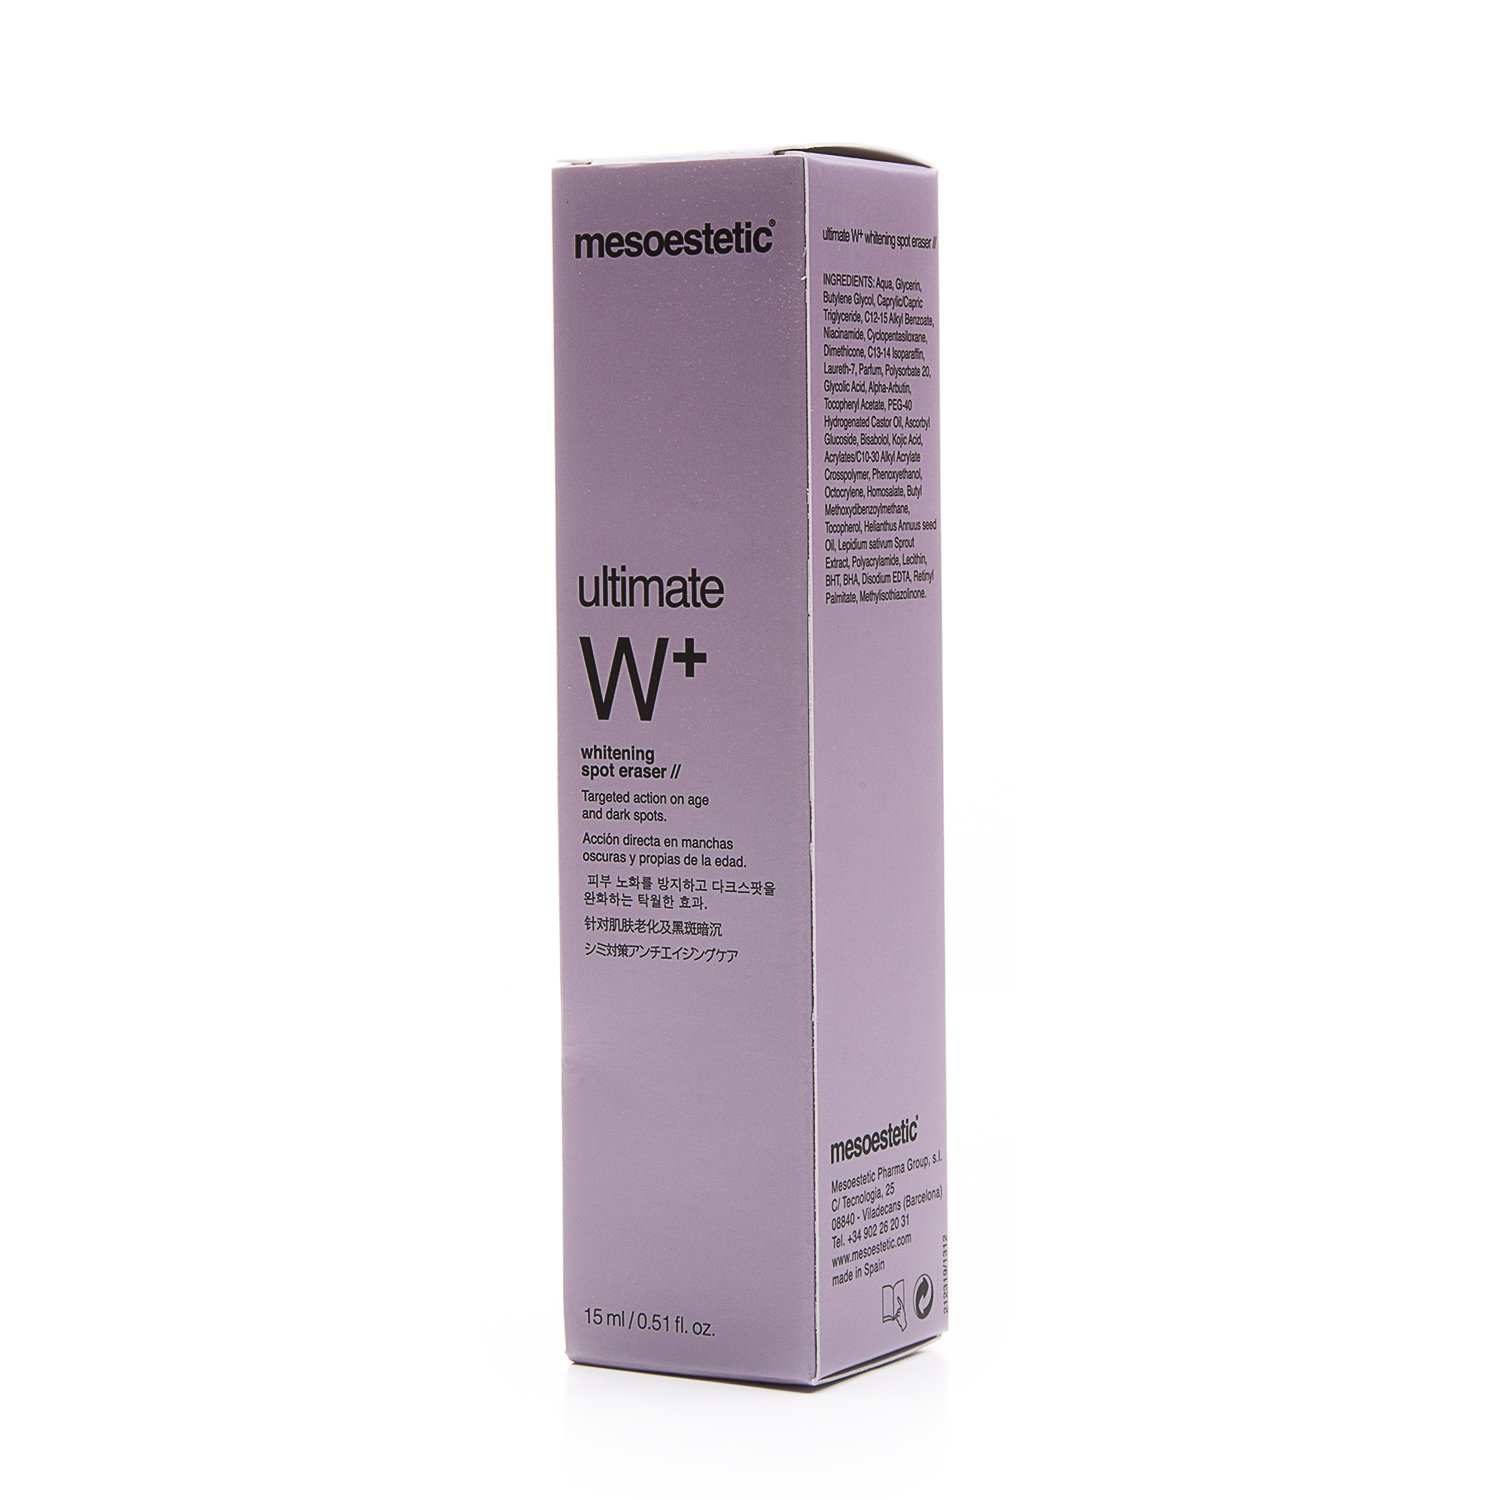 Ultimate W+ Whitening spot eraser (15 ml) by Mesoestetic